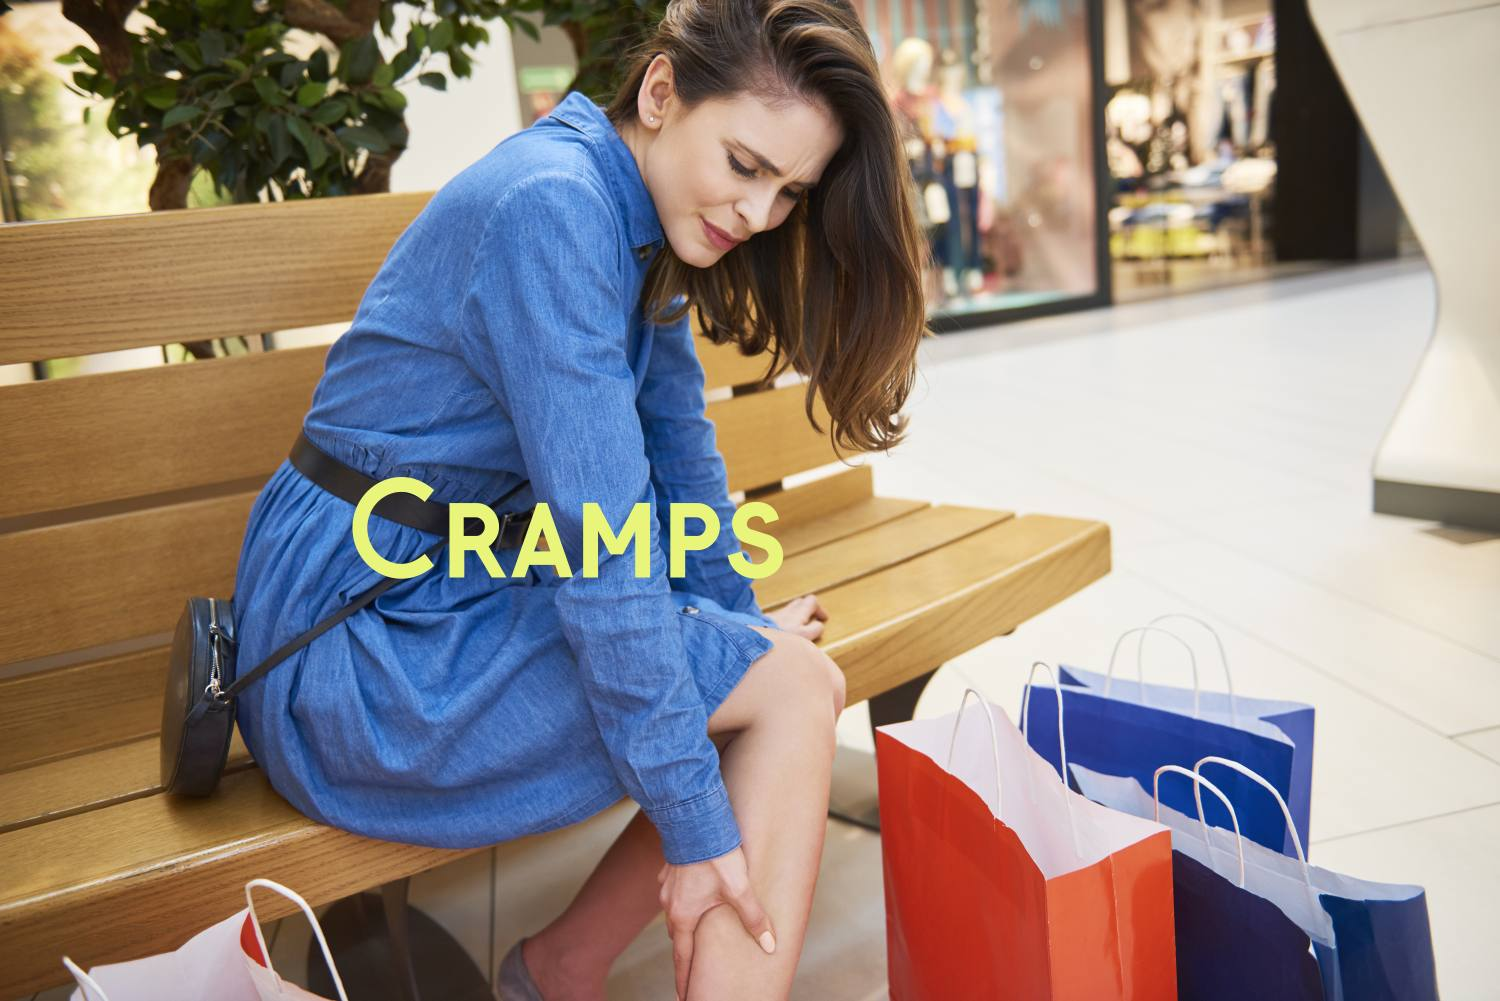 10 Home Remedies for cramps